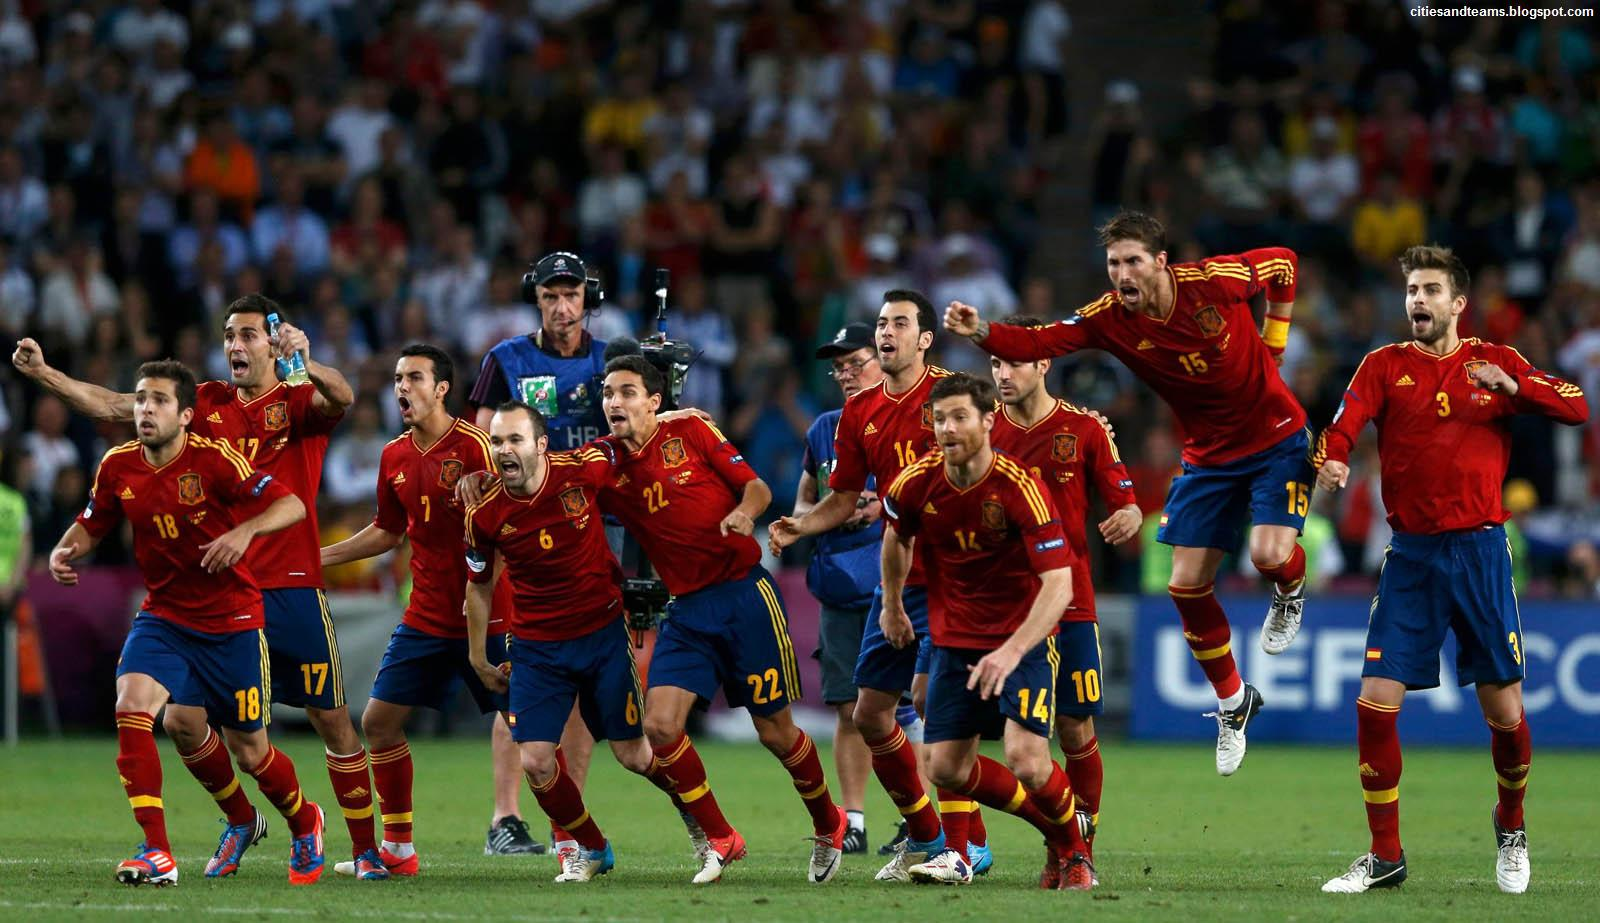 Spain National Football Team Final Celebration Euro 2012 1600x923